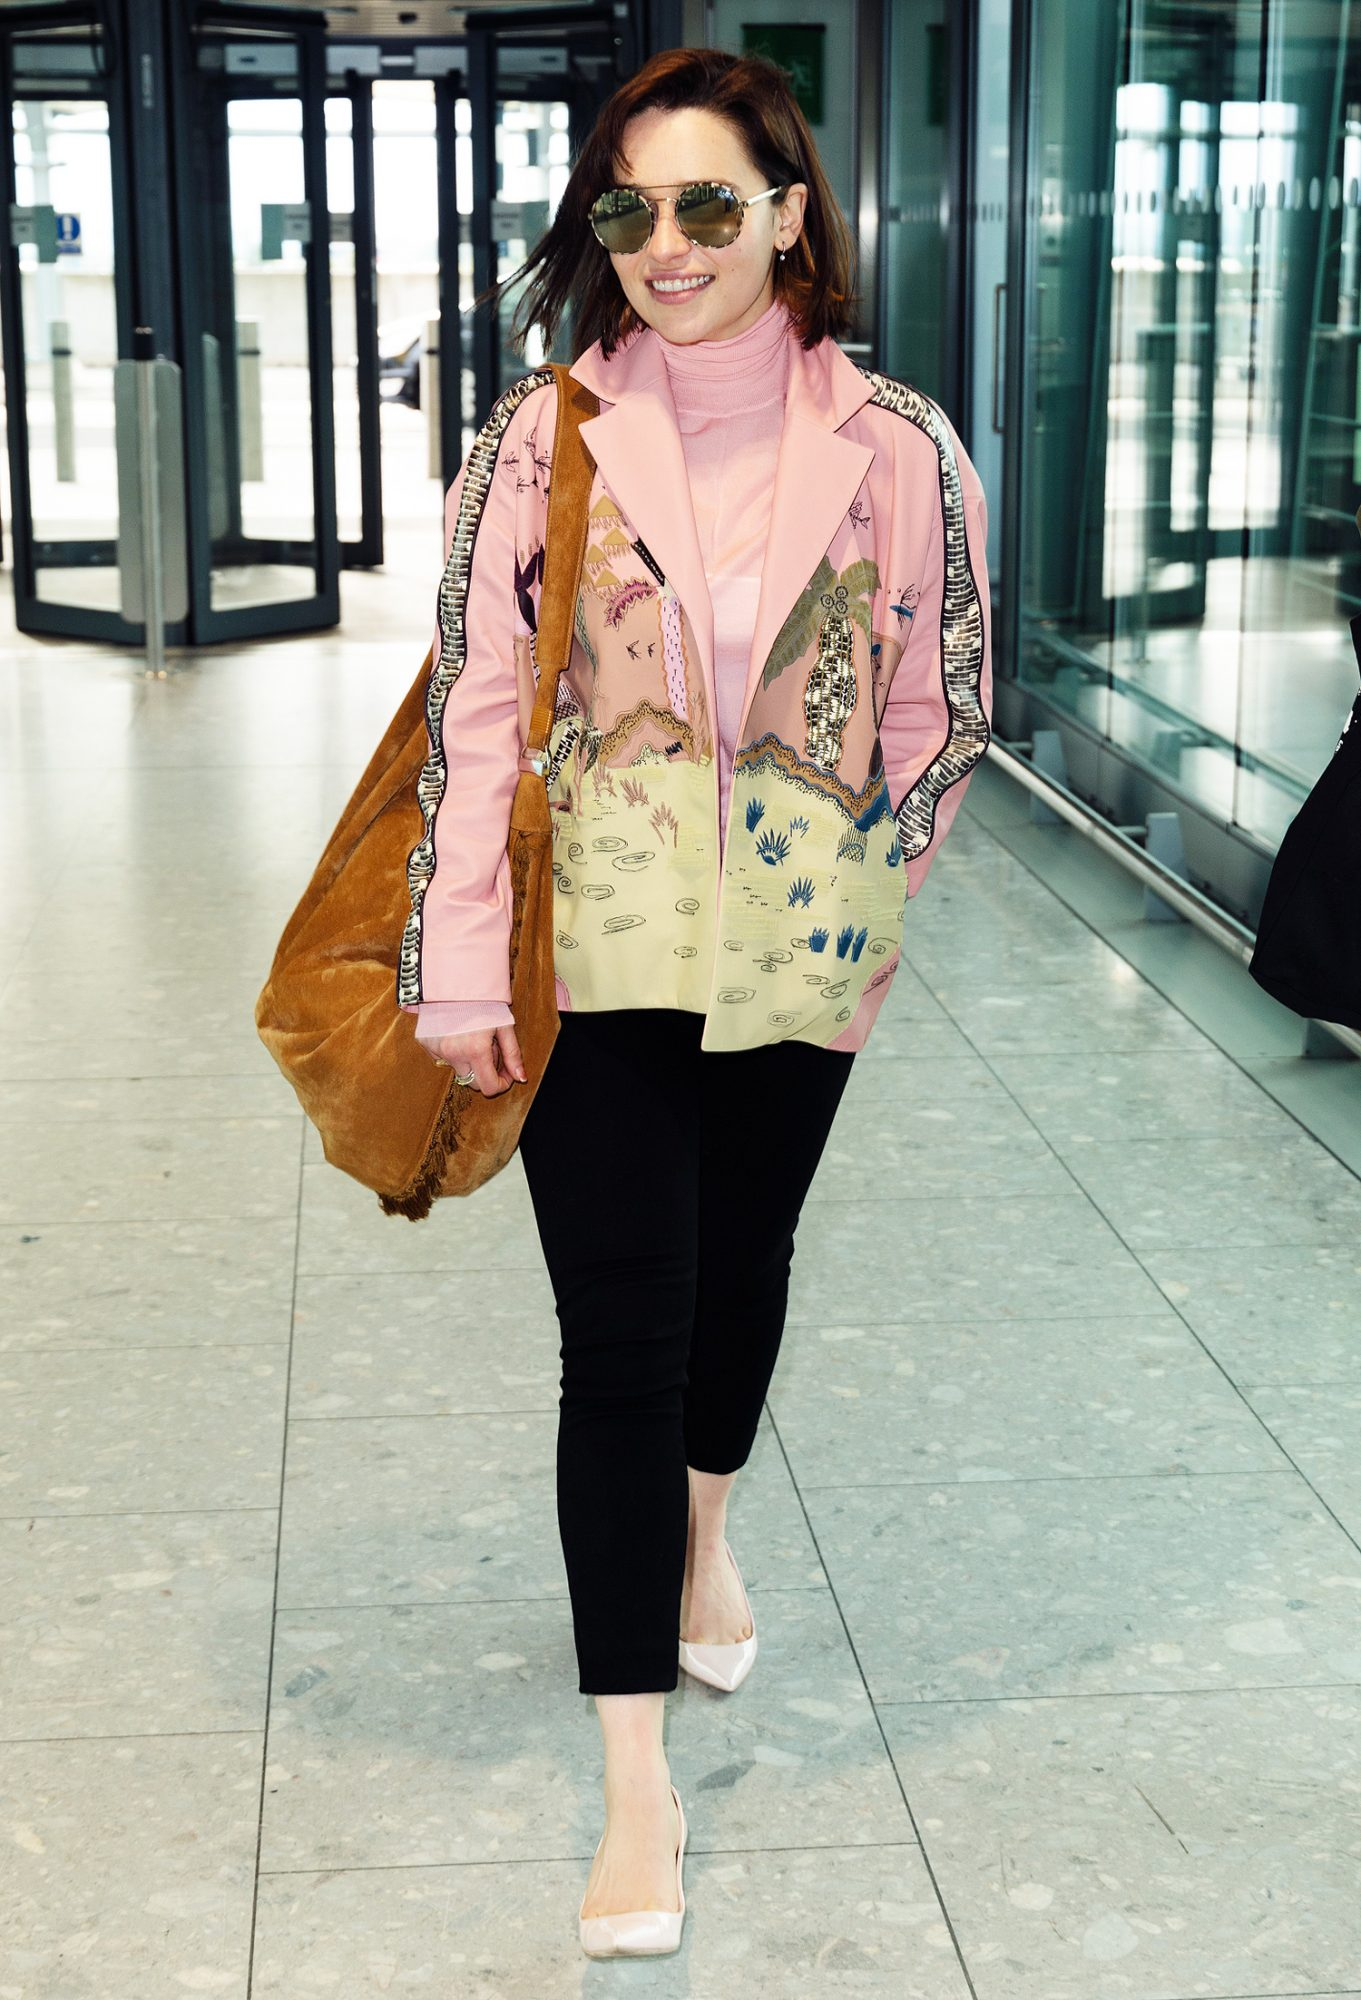 EXCLUSIVE: Emilia Clarke spotted departing Heathrow Airport